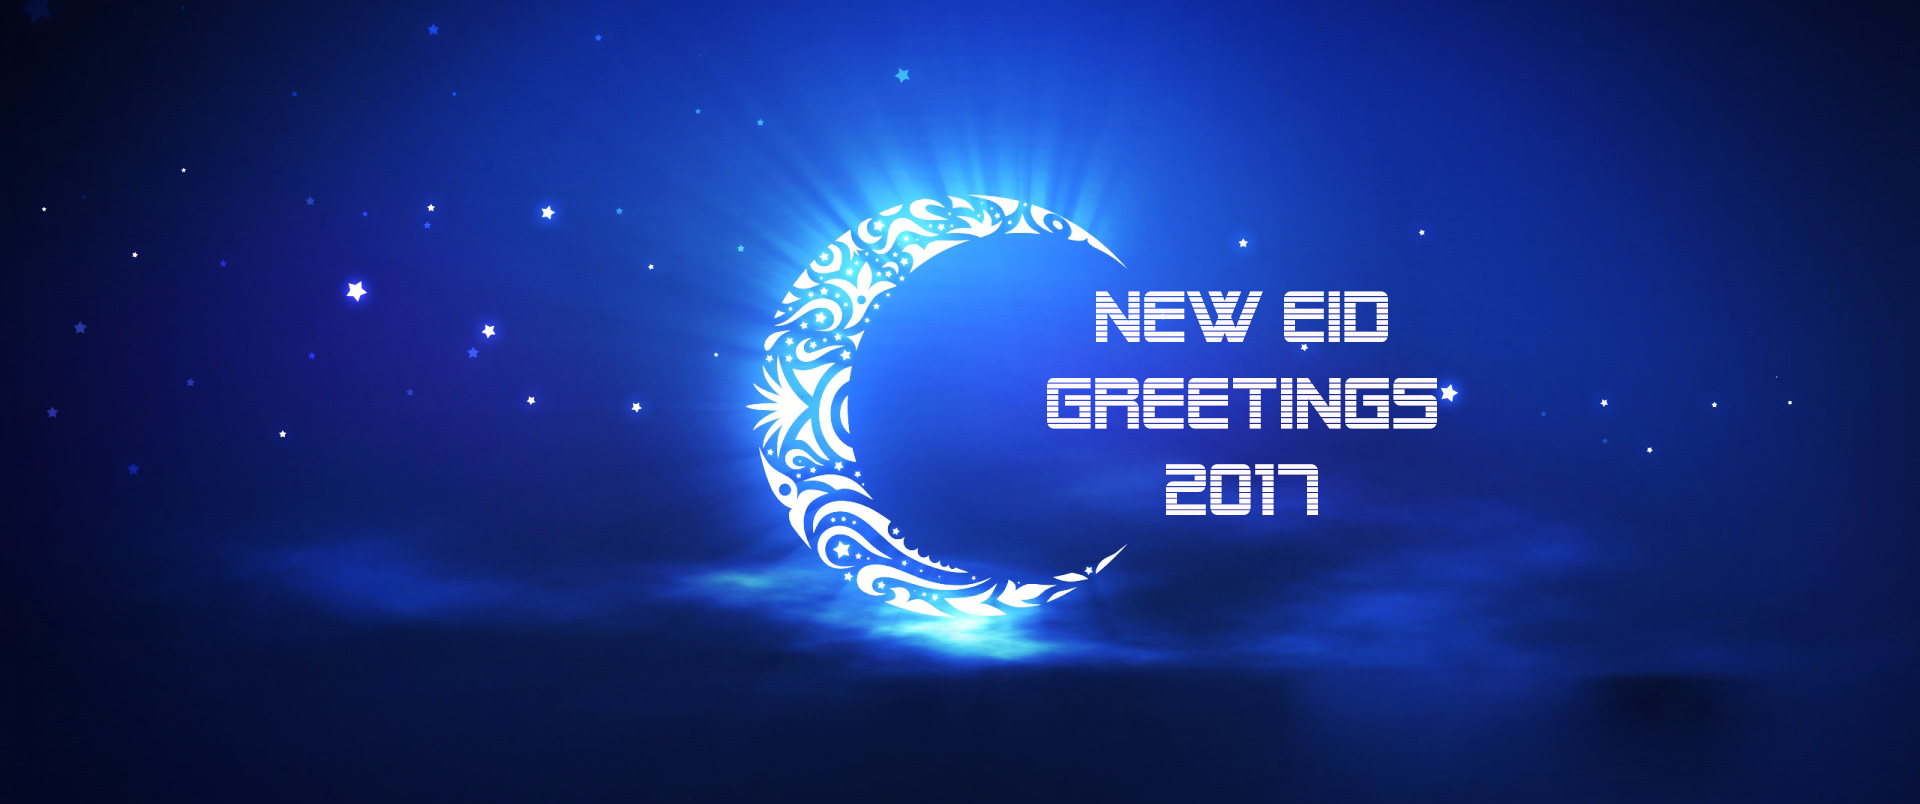 Eid Greeting Wishes In English Eid Ul Fitr Eid Ul Adha Greetings Sms